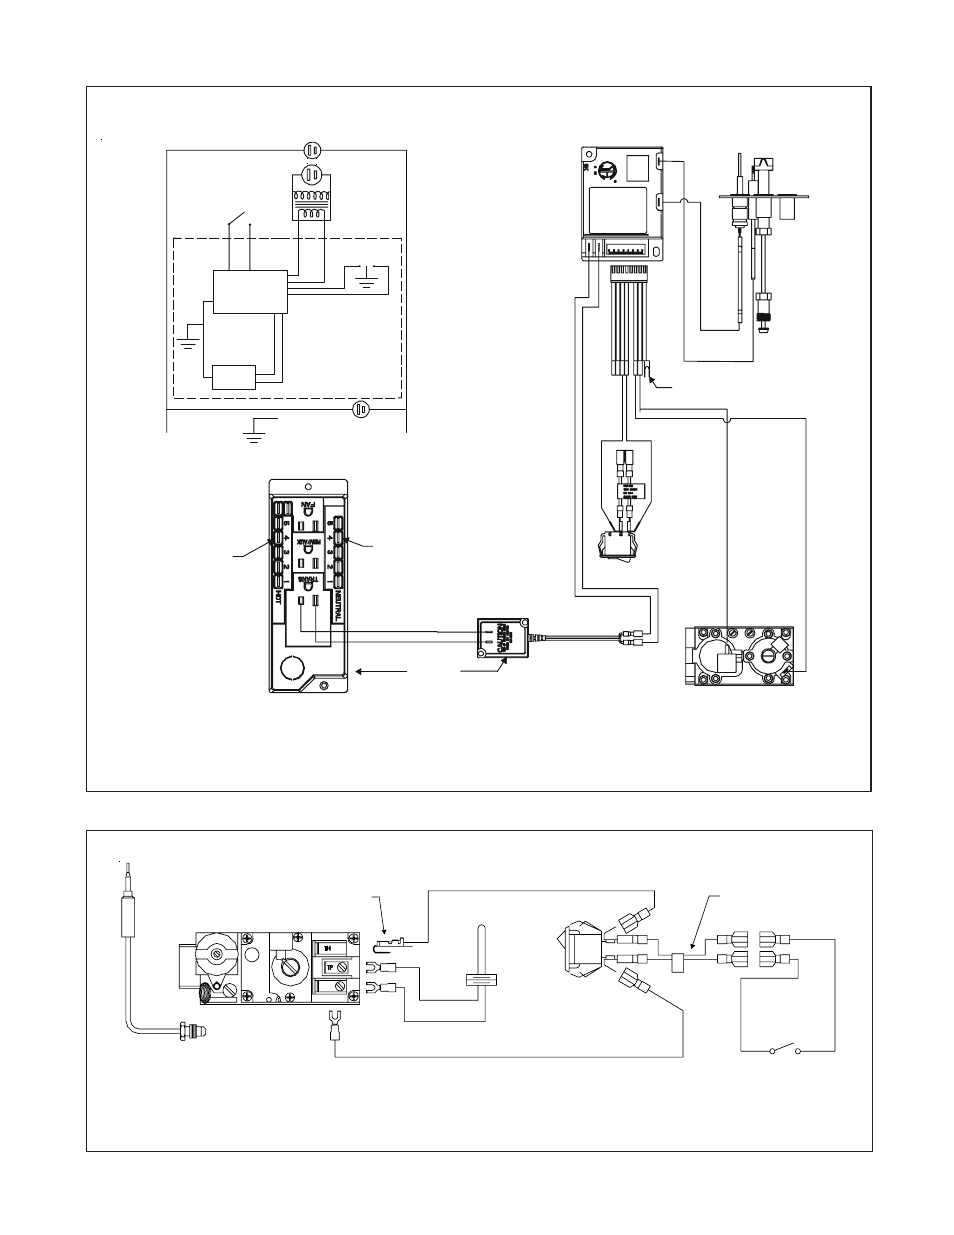 Ignition Wiring Smart Real Diagram 1962 Cadillac Figure 10 Standing Pilot Hearth And Home Rh Manualsdir Com Ford System Coil